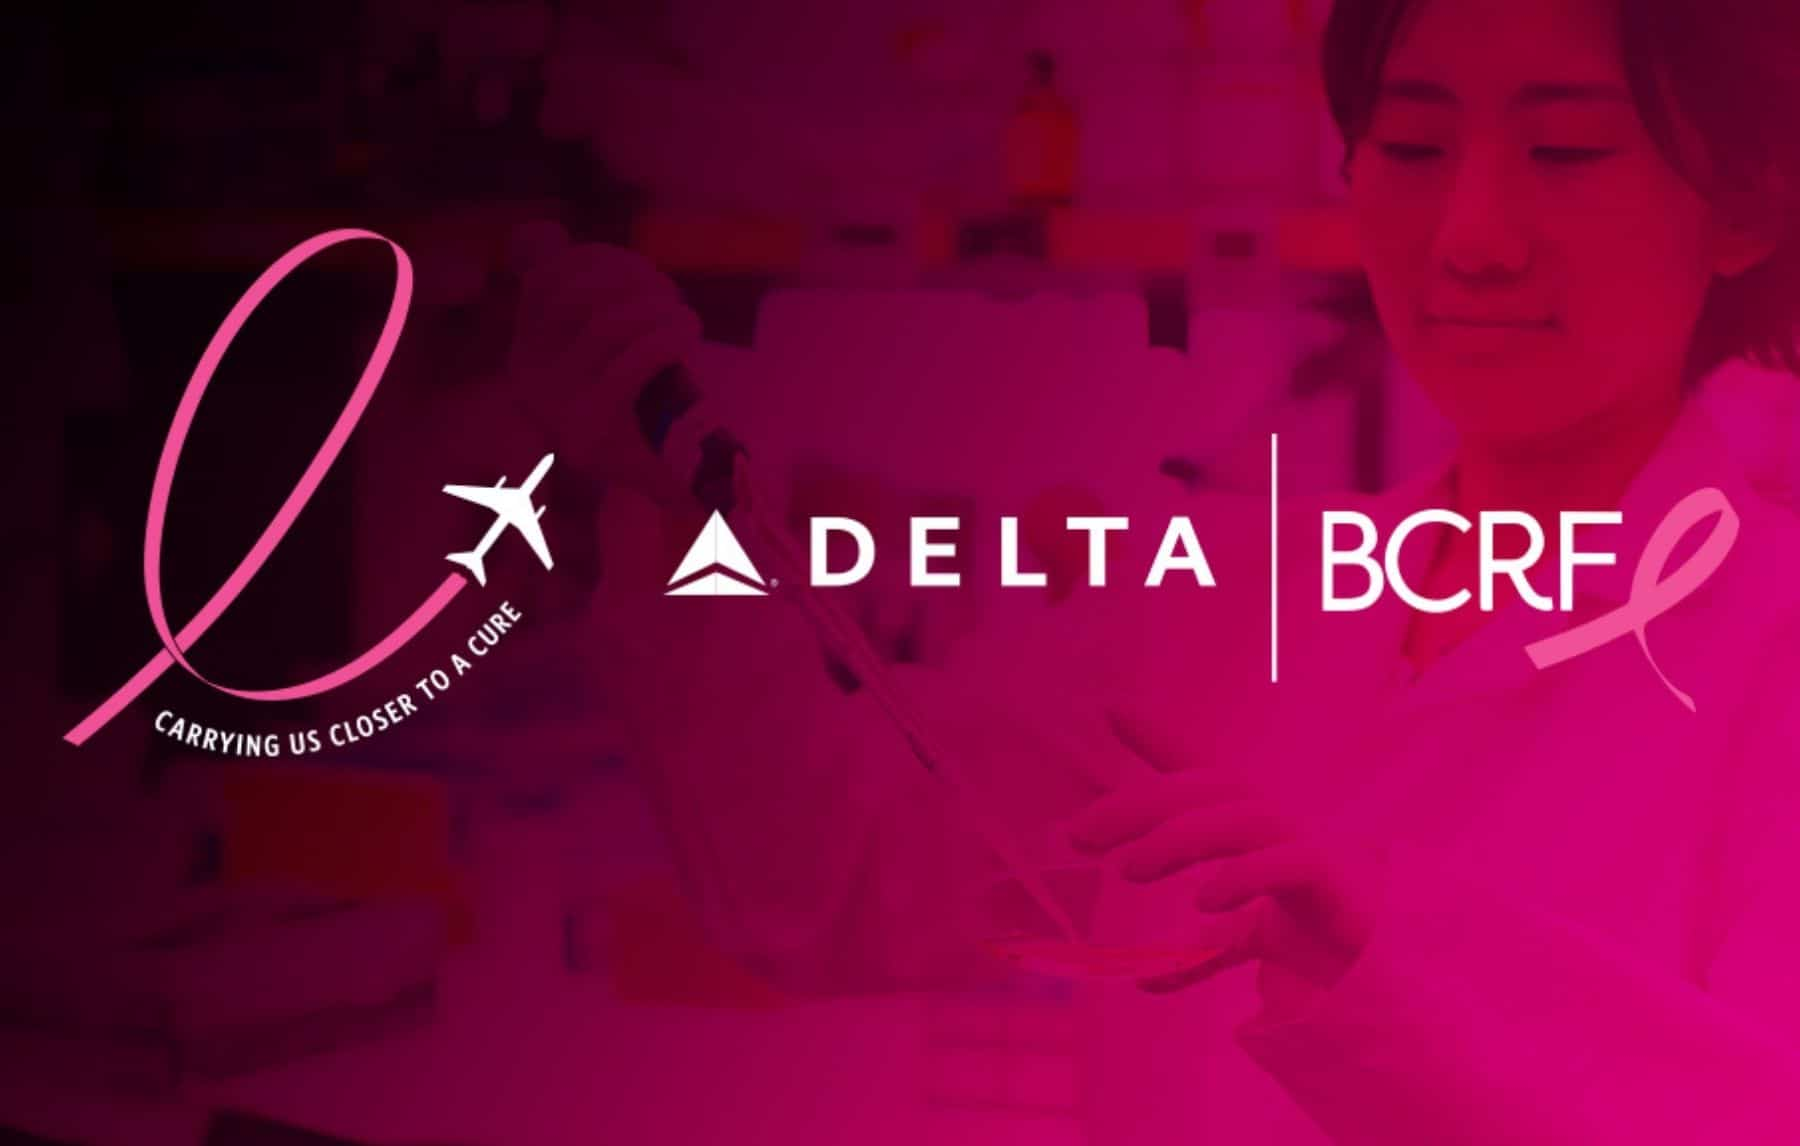 Here's how you can support Delta's breast cancer research fundraising efforts safely this year